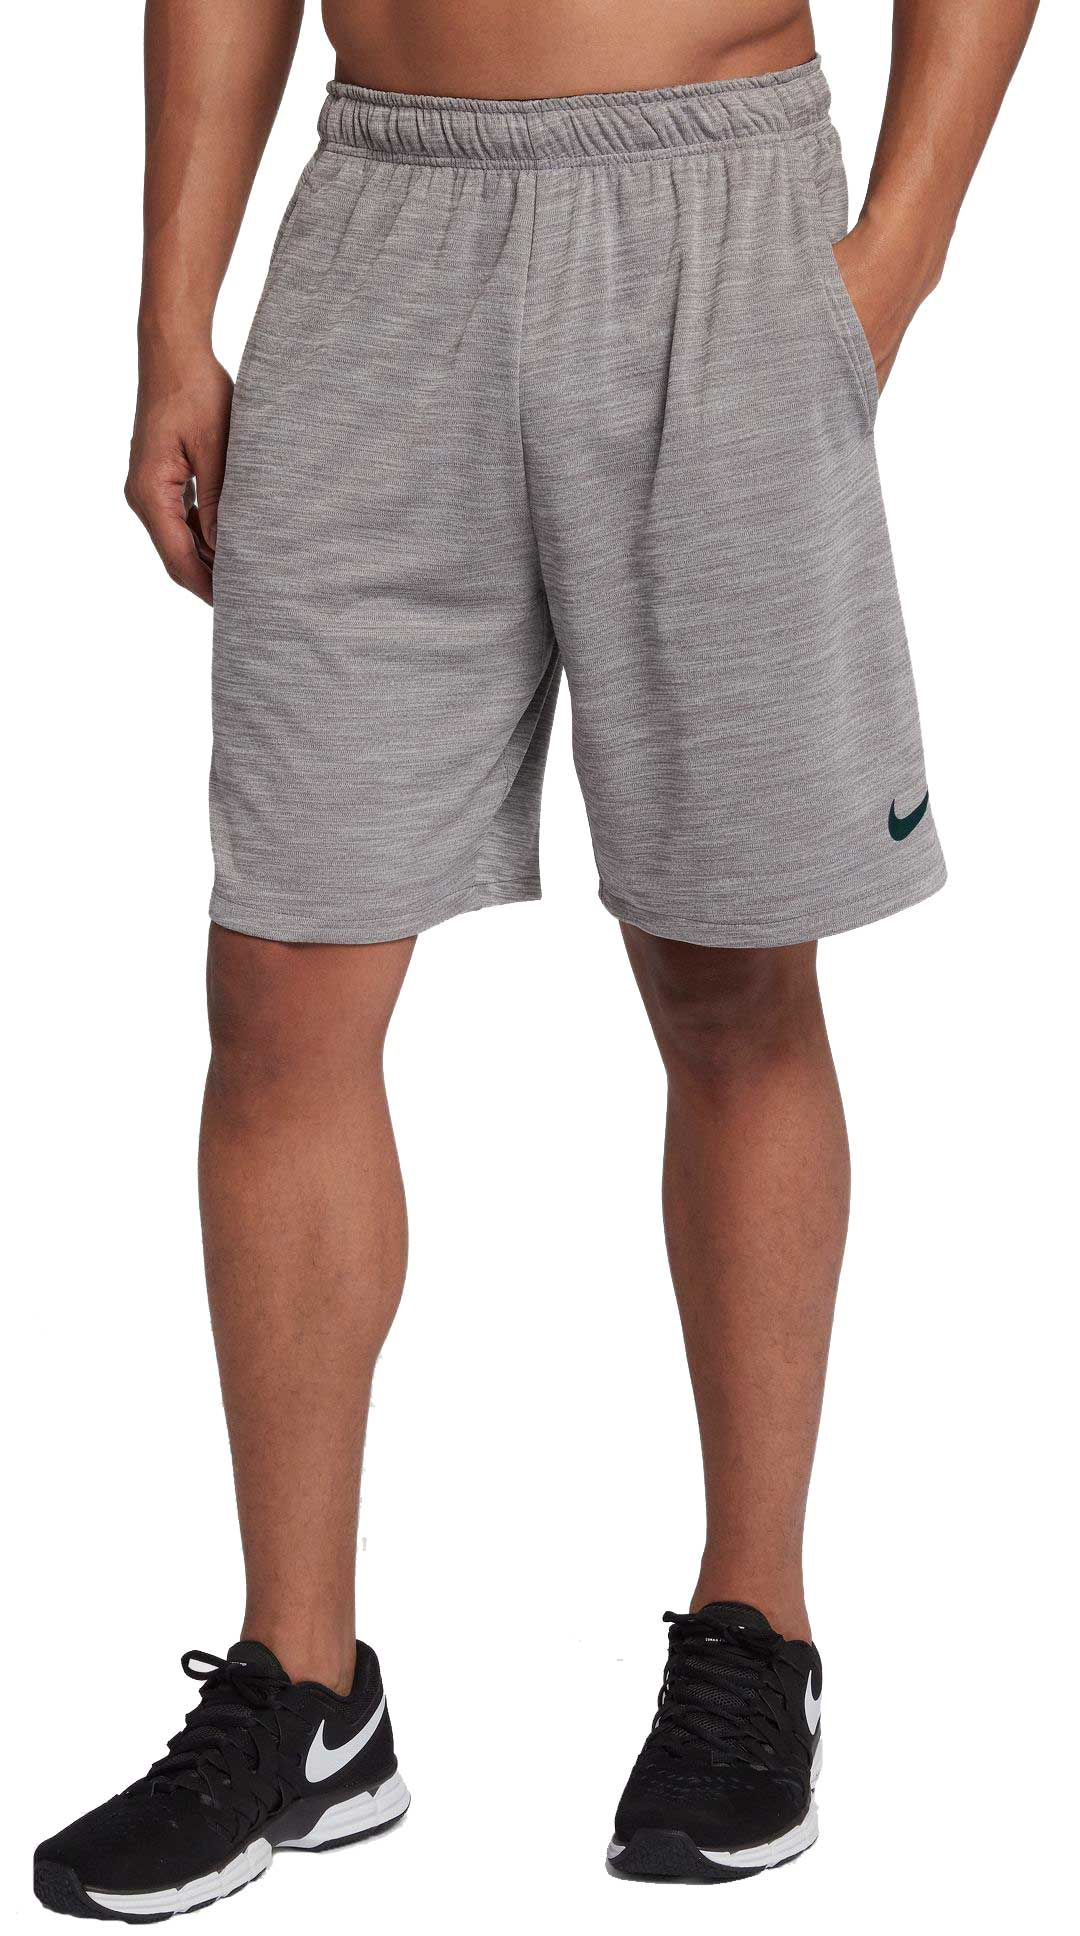 6783e523d92bb Nike Men's Dry Veneer Training Shorts. noImageFound. Previous. 1. 2